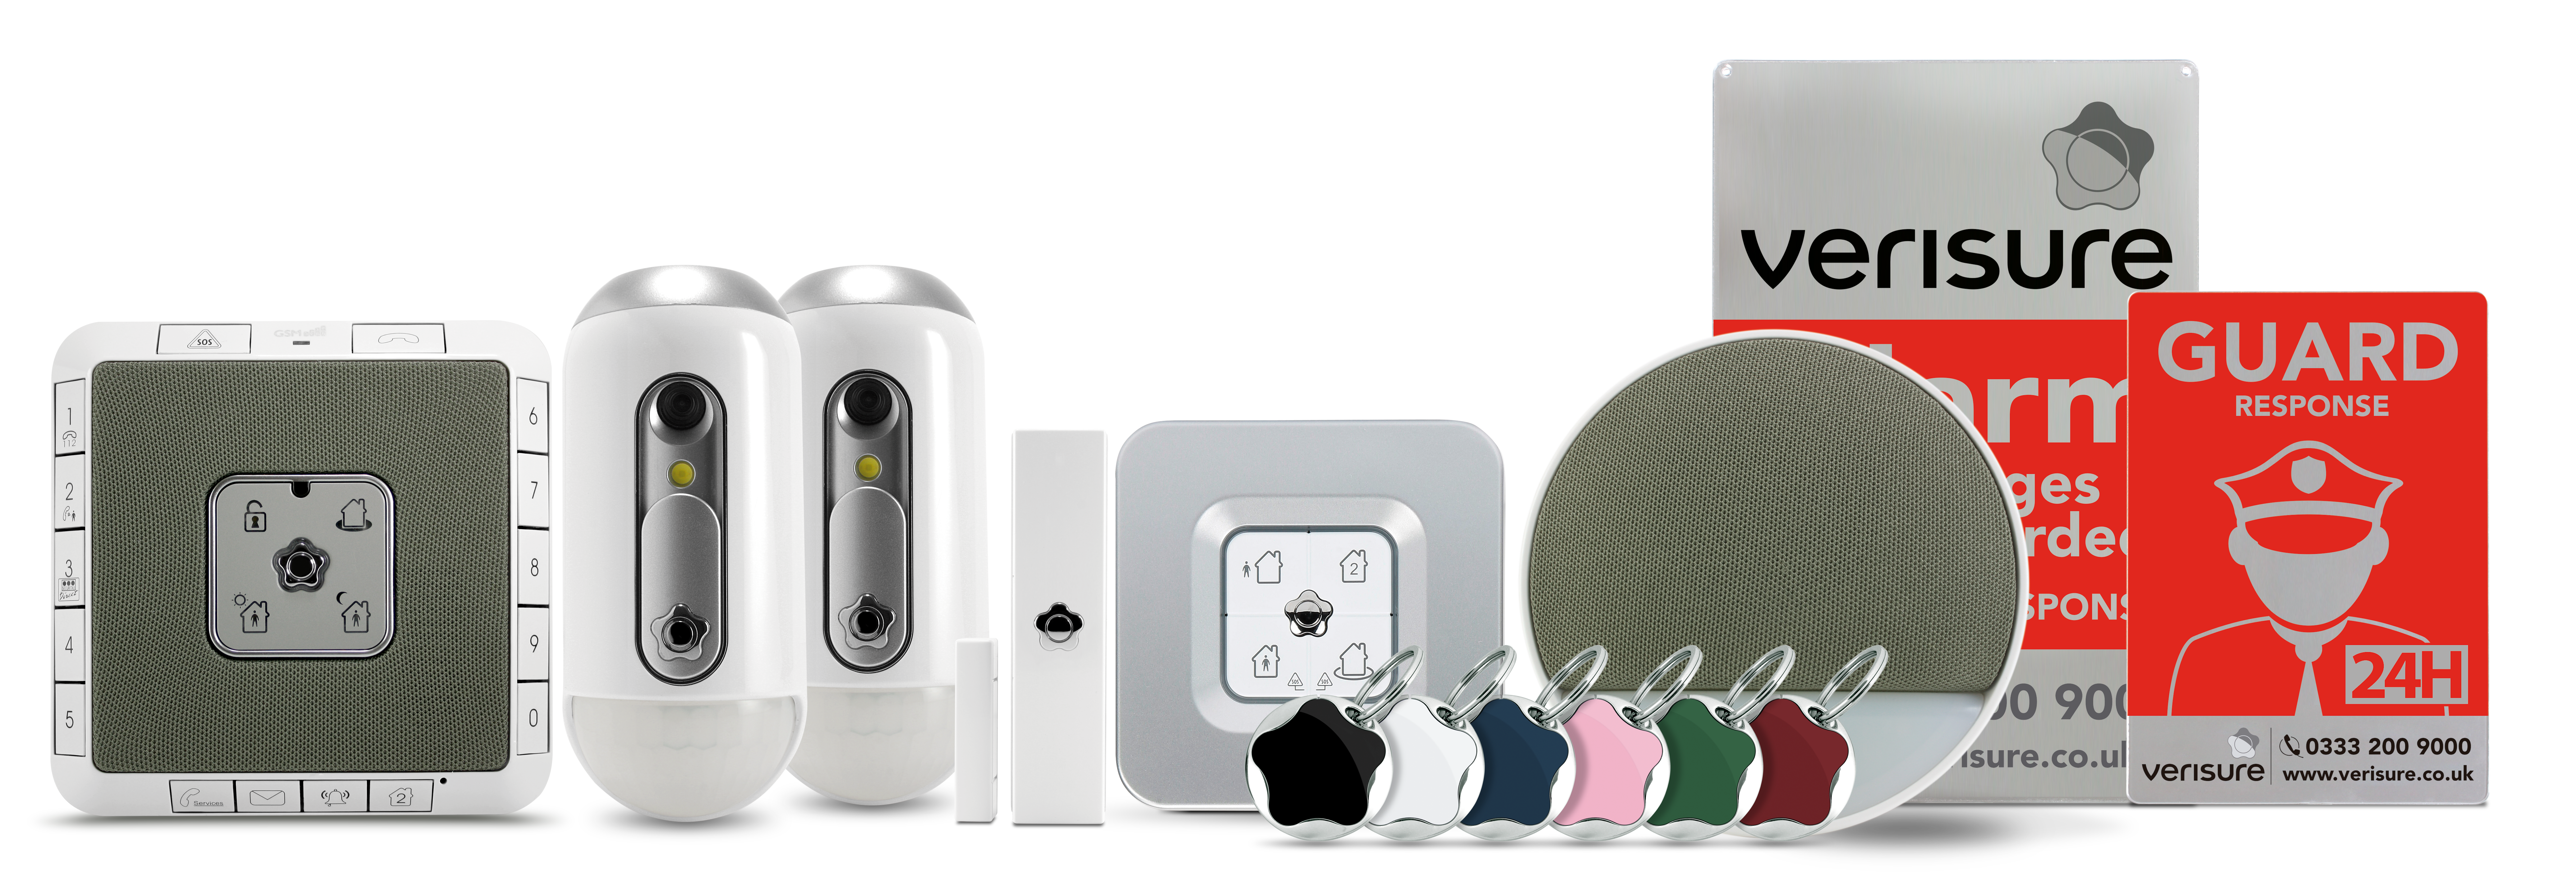 Choosing the right alarm for your home - Verisure Smart Alarms